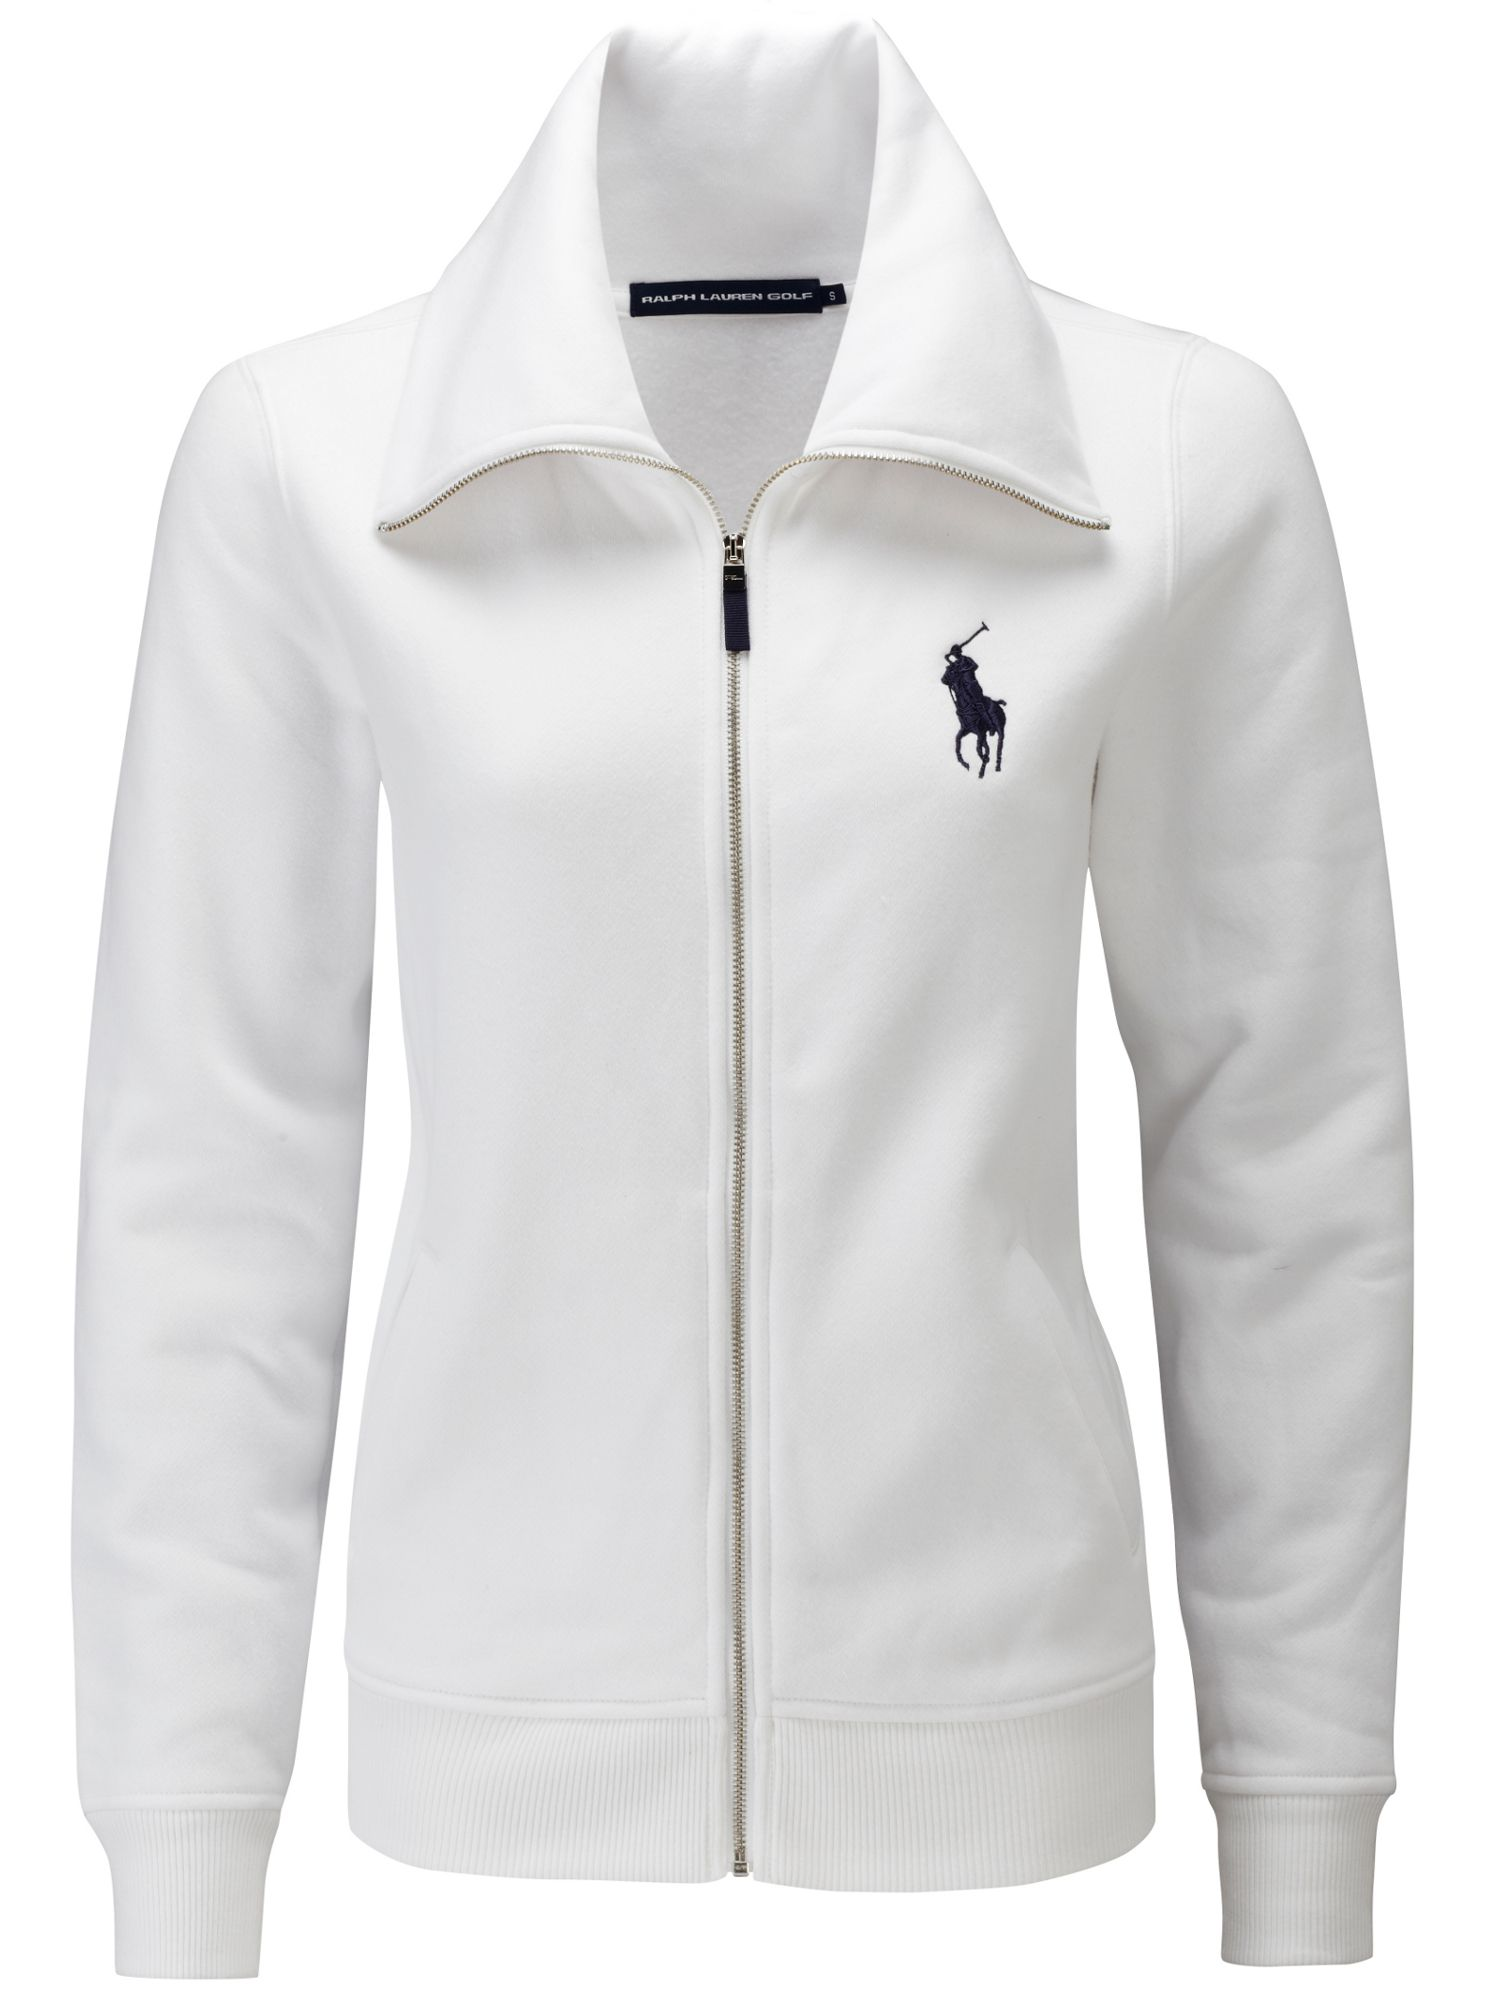 Full zip felicity fleece